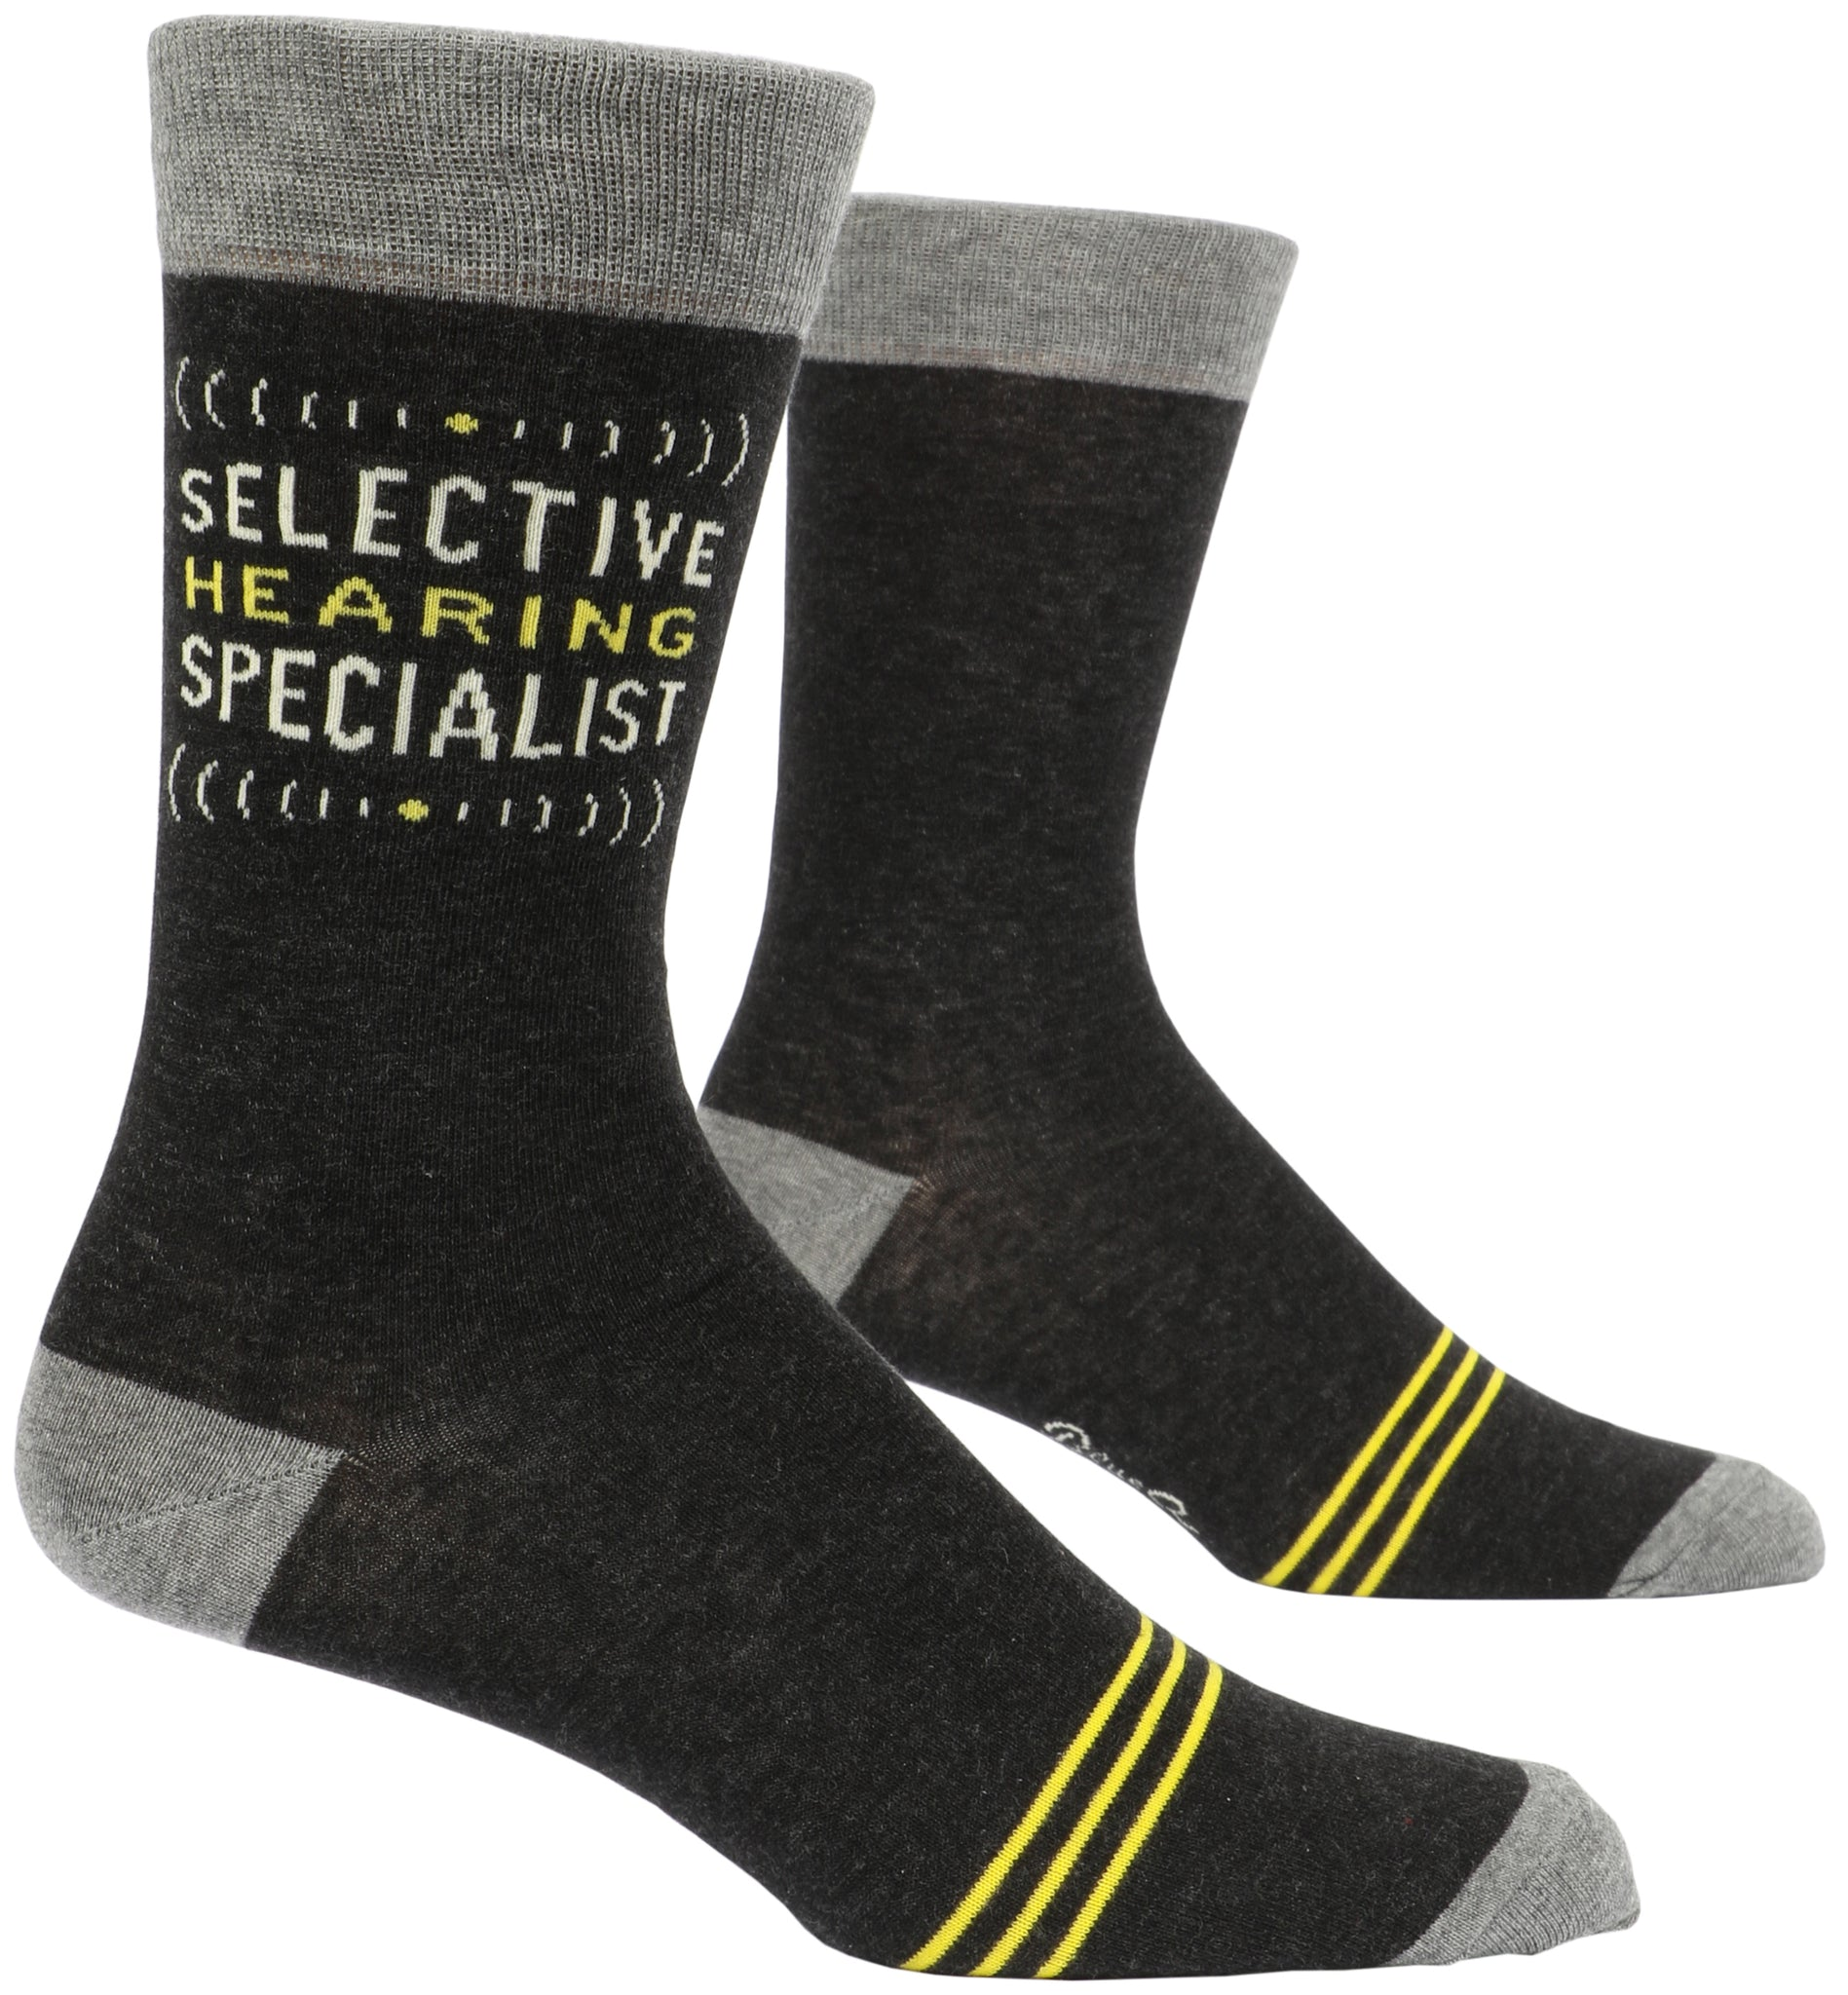 Blue Q: Men's Novelty Socks - Selective Hearing